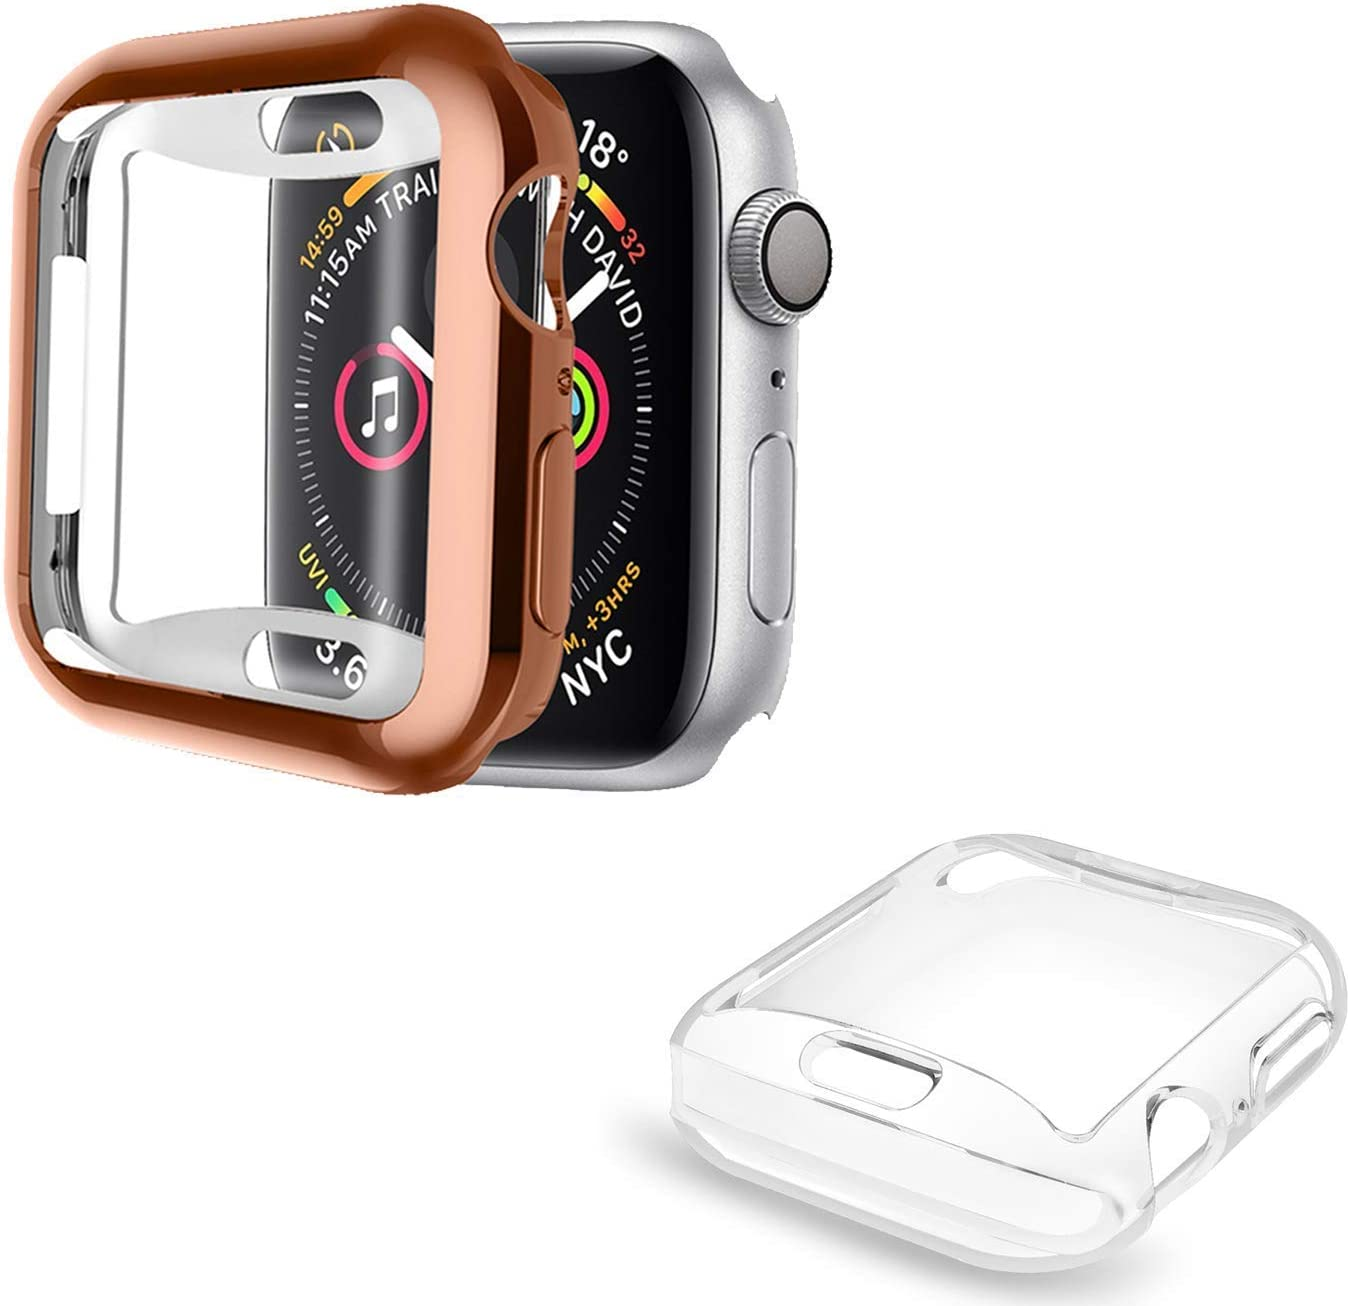 [2 Pack] ALADRS Screen Protector Case for Apple Watch 44mm, Full Protective HD Ultra-Thin Cover Compatible with iWatch Series 4 Series 5 Series 6 SE Bumper Case, Rose Gold+Clear